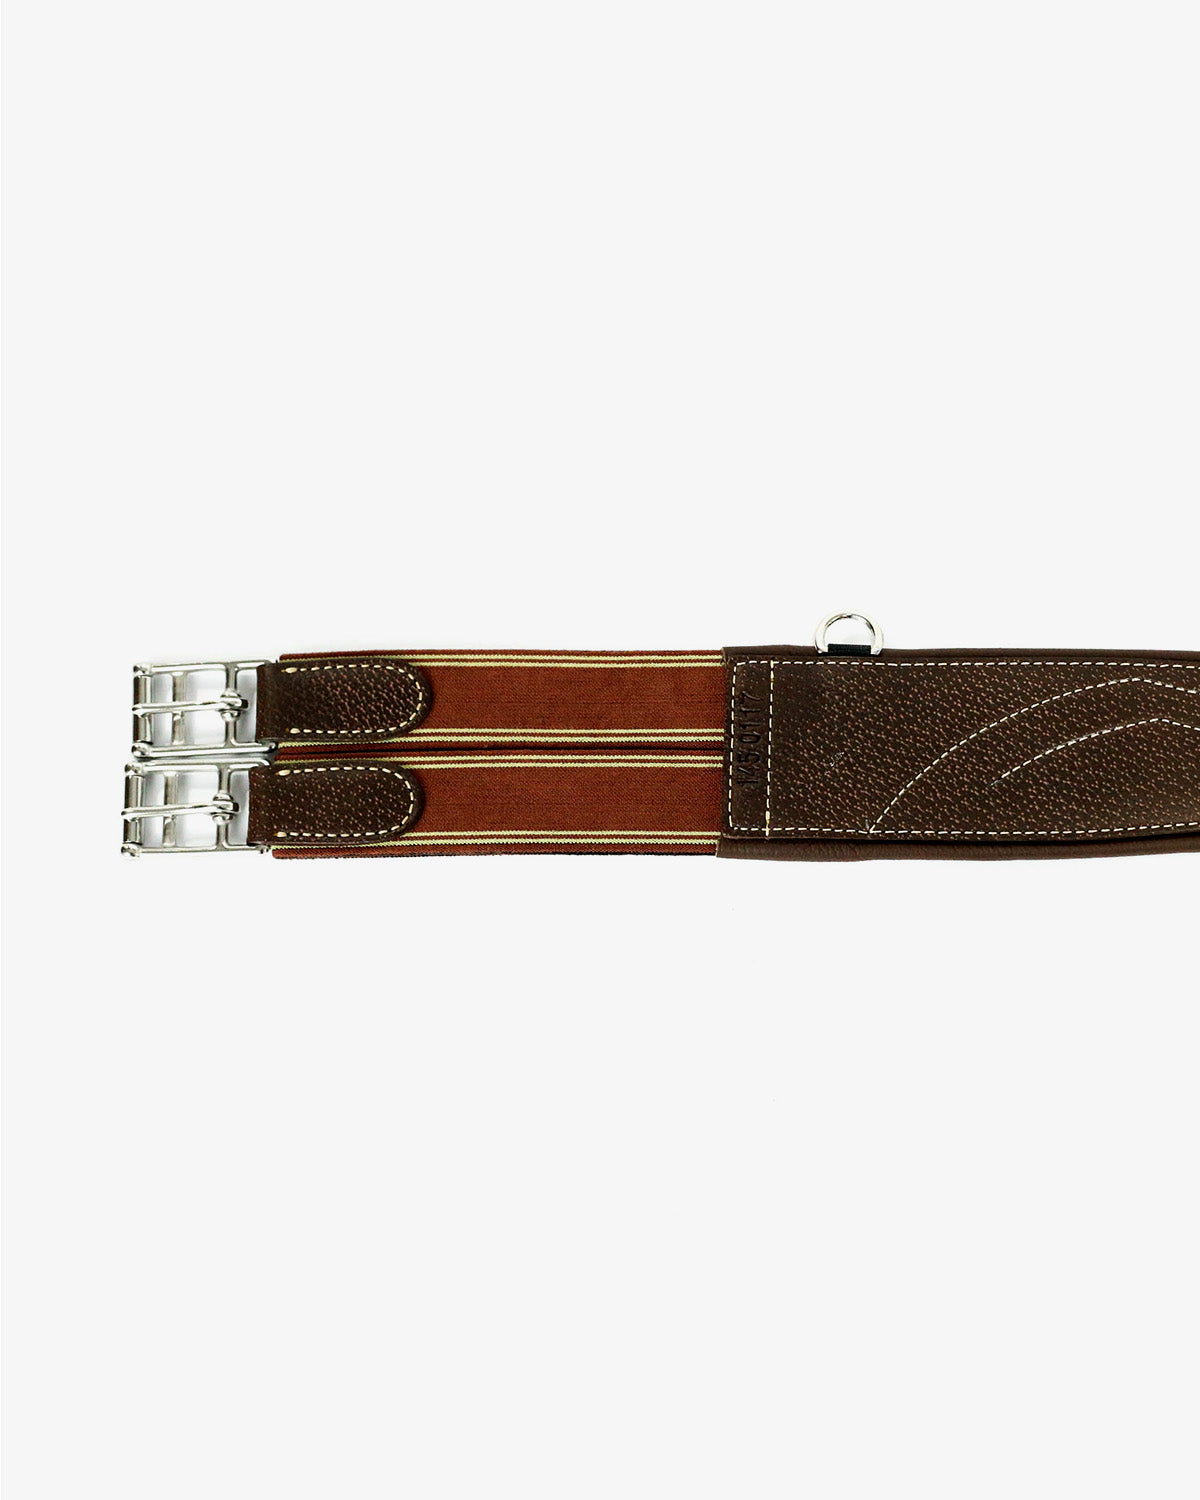 A10 Leather Girth